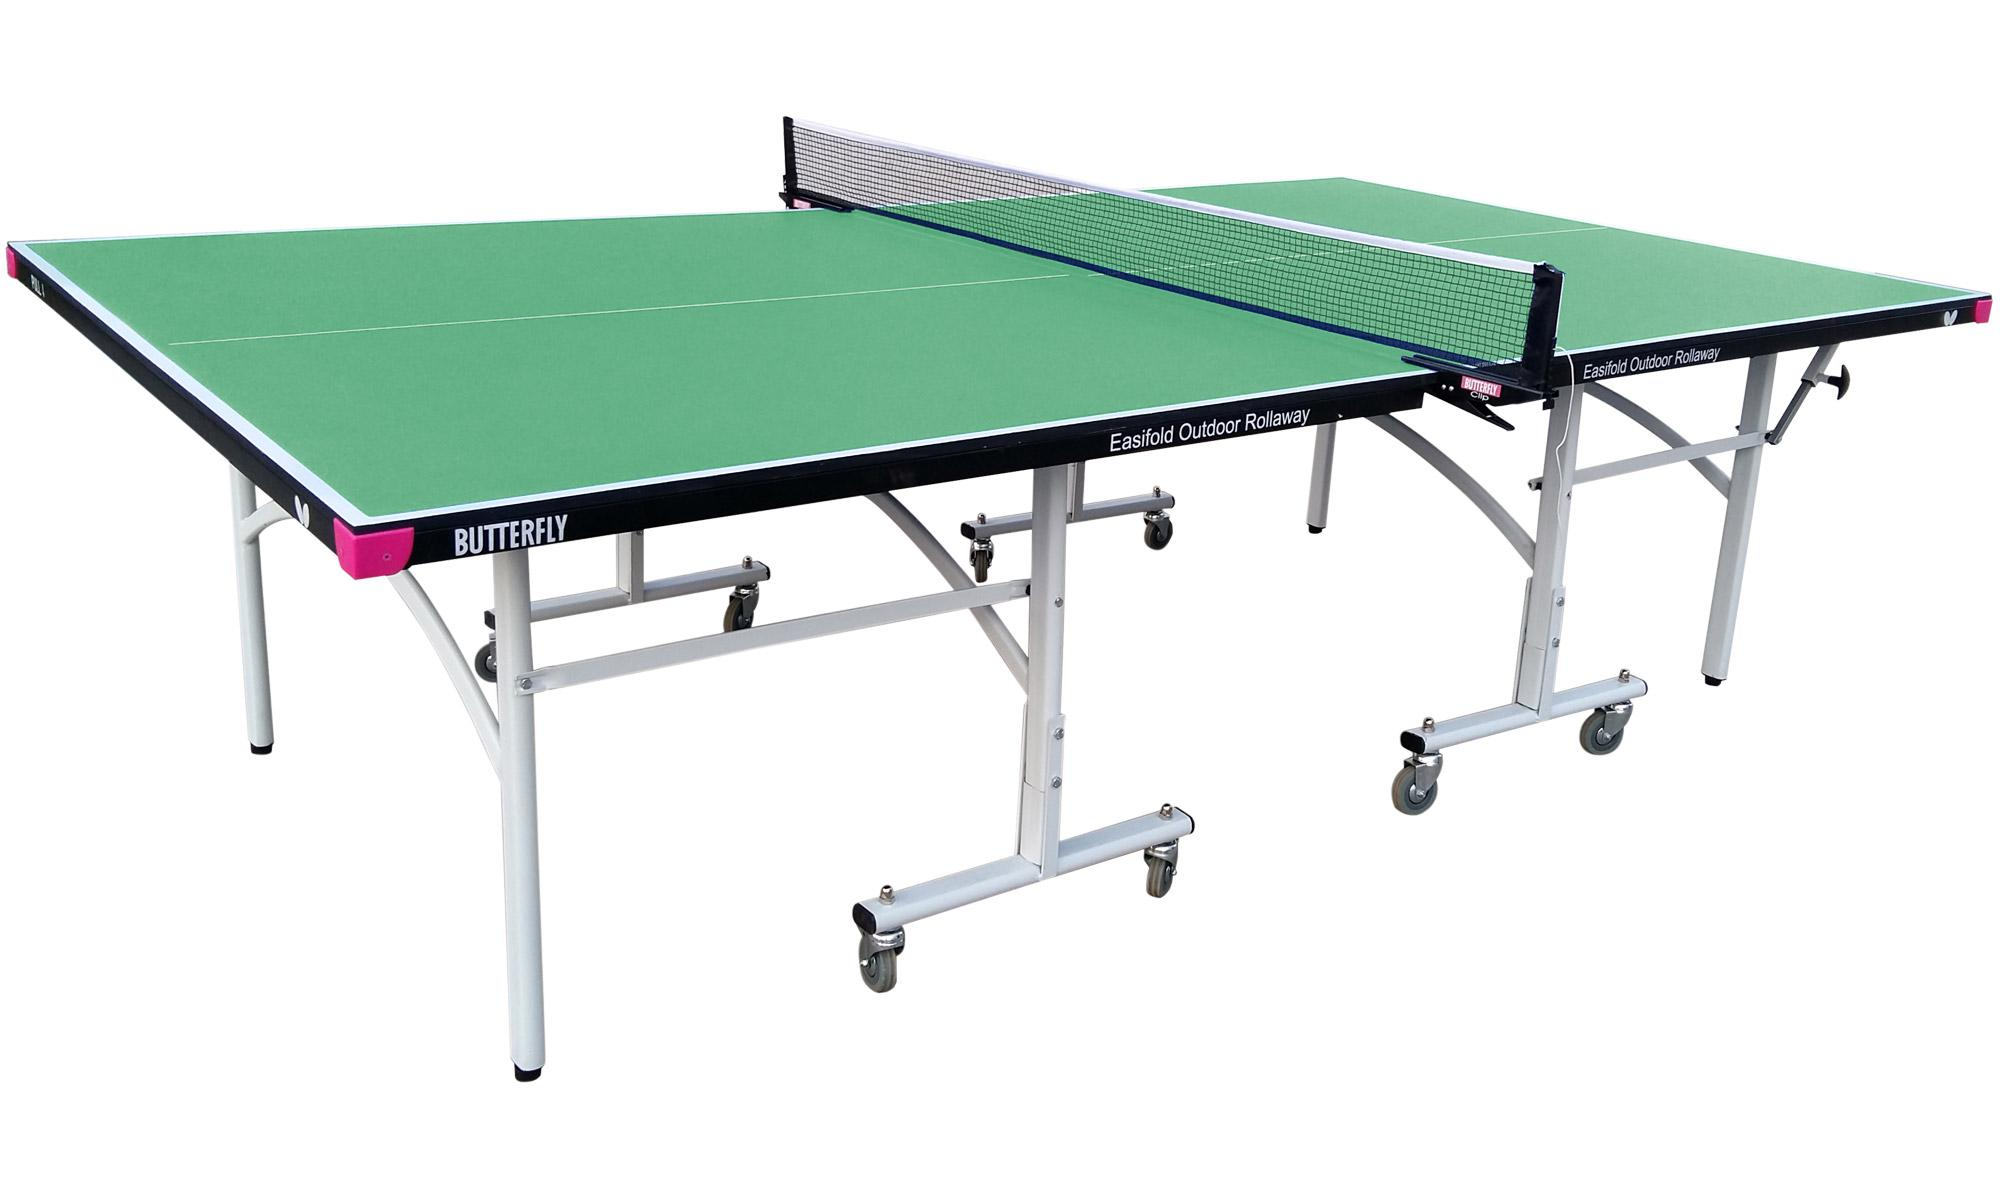 Butterfly easifold 12 outdoor table tennis table - Weatherproof table tennis table ...